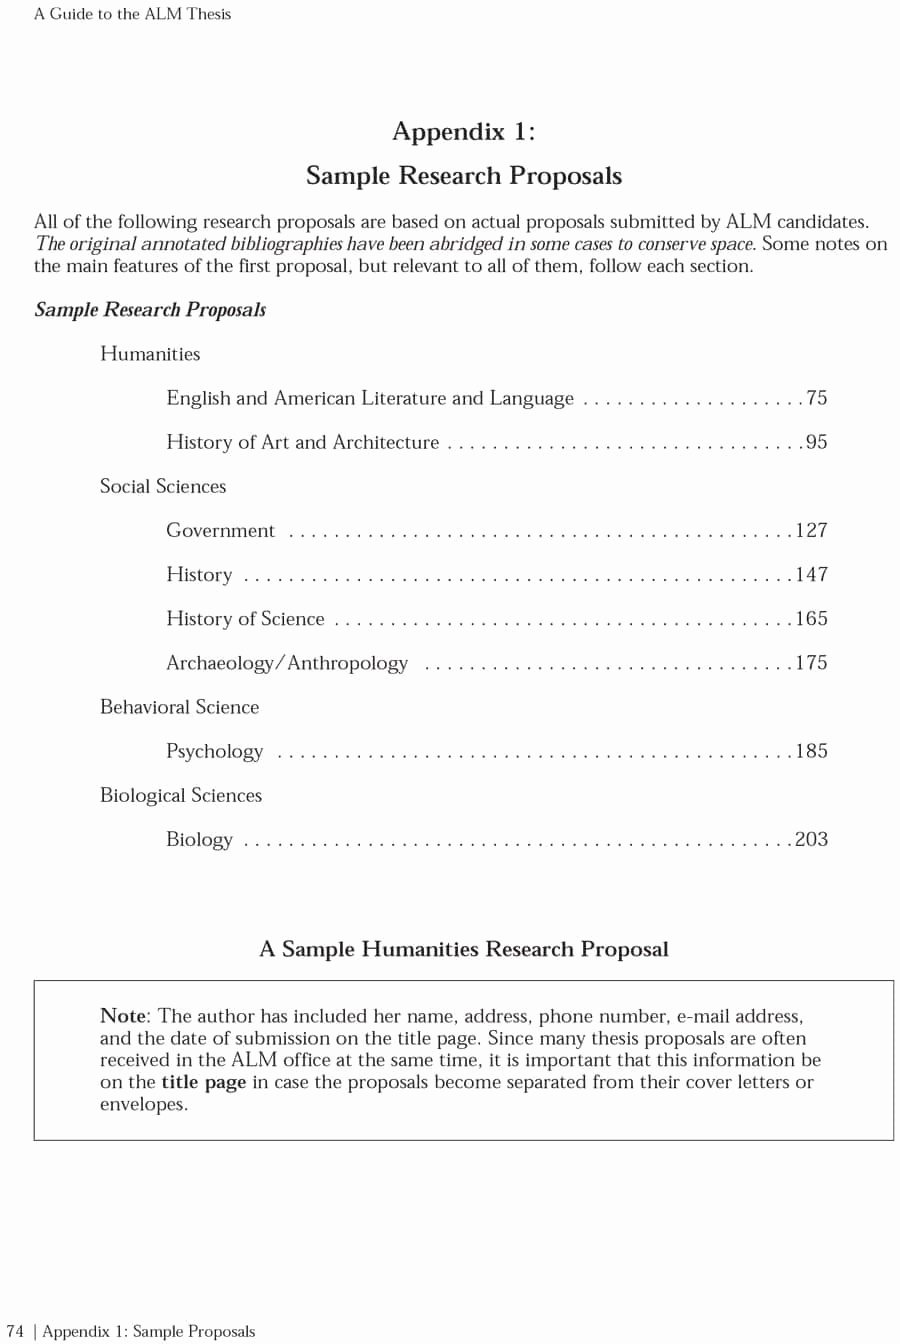 Research Paper Proposal Template Best Of Choose From 40 Research Proposal Templates & Examples 100